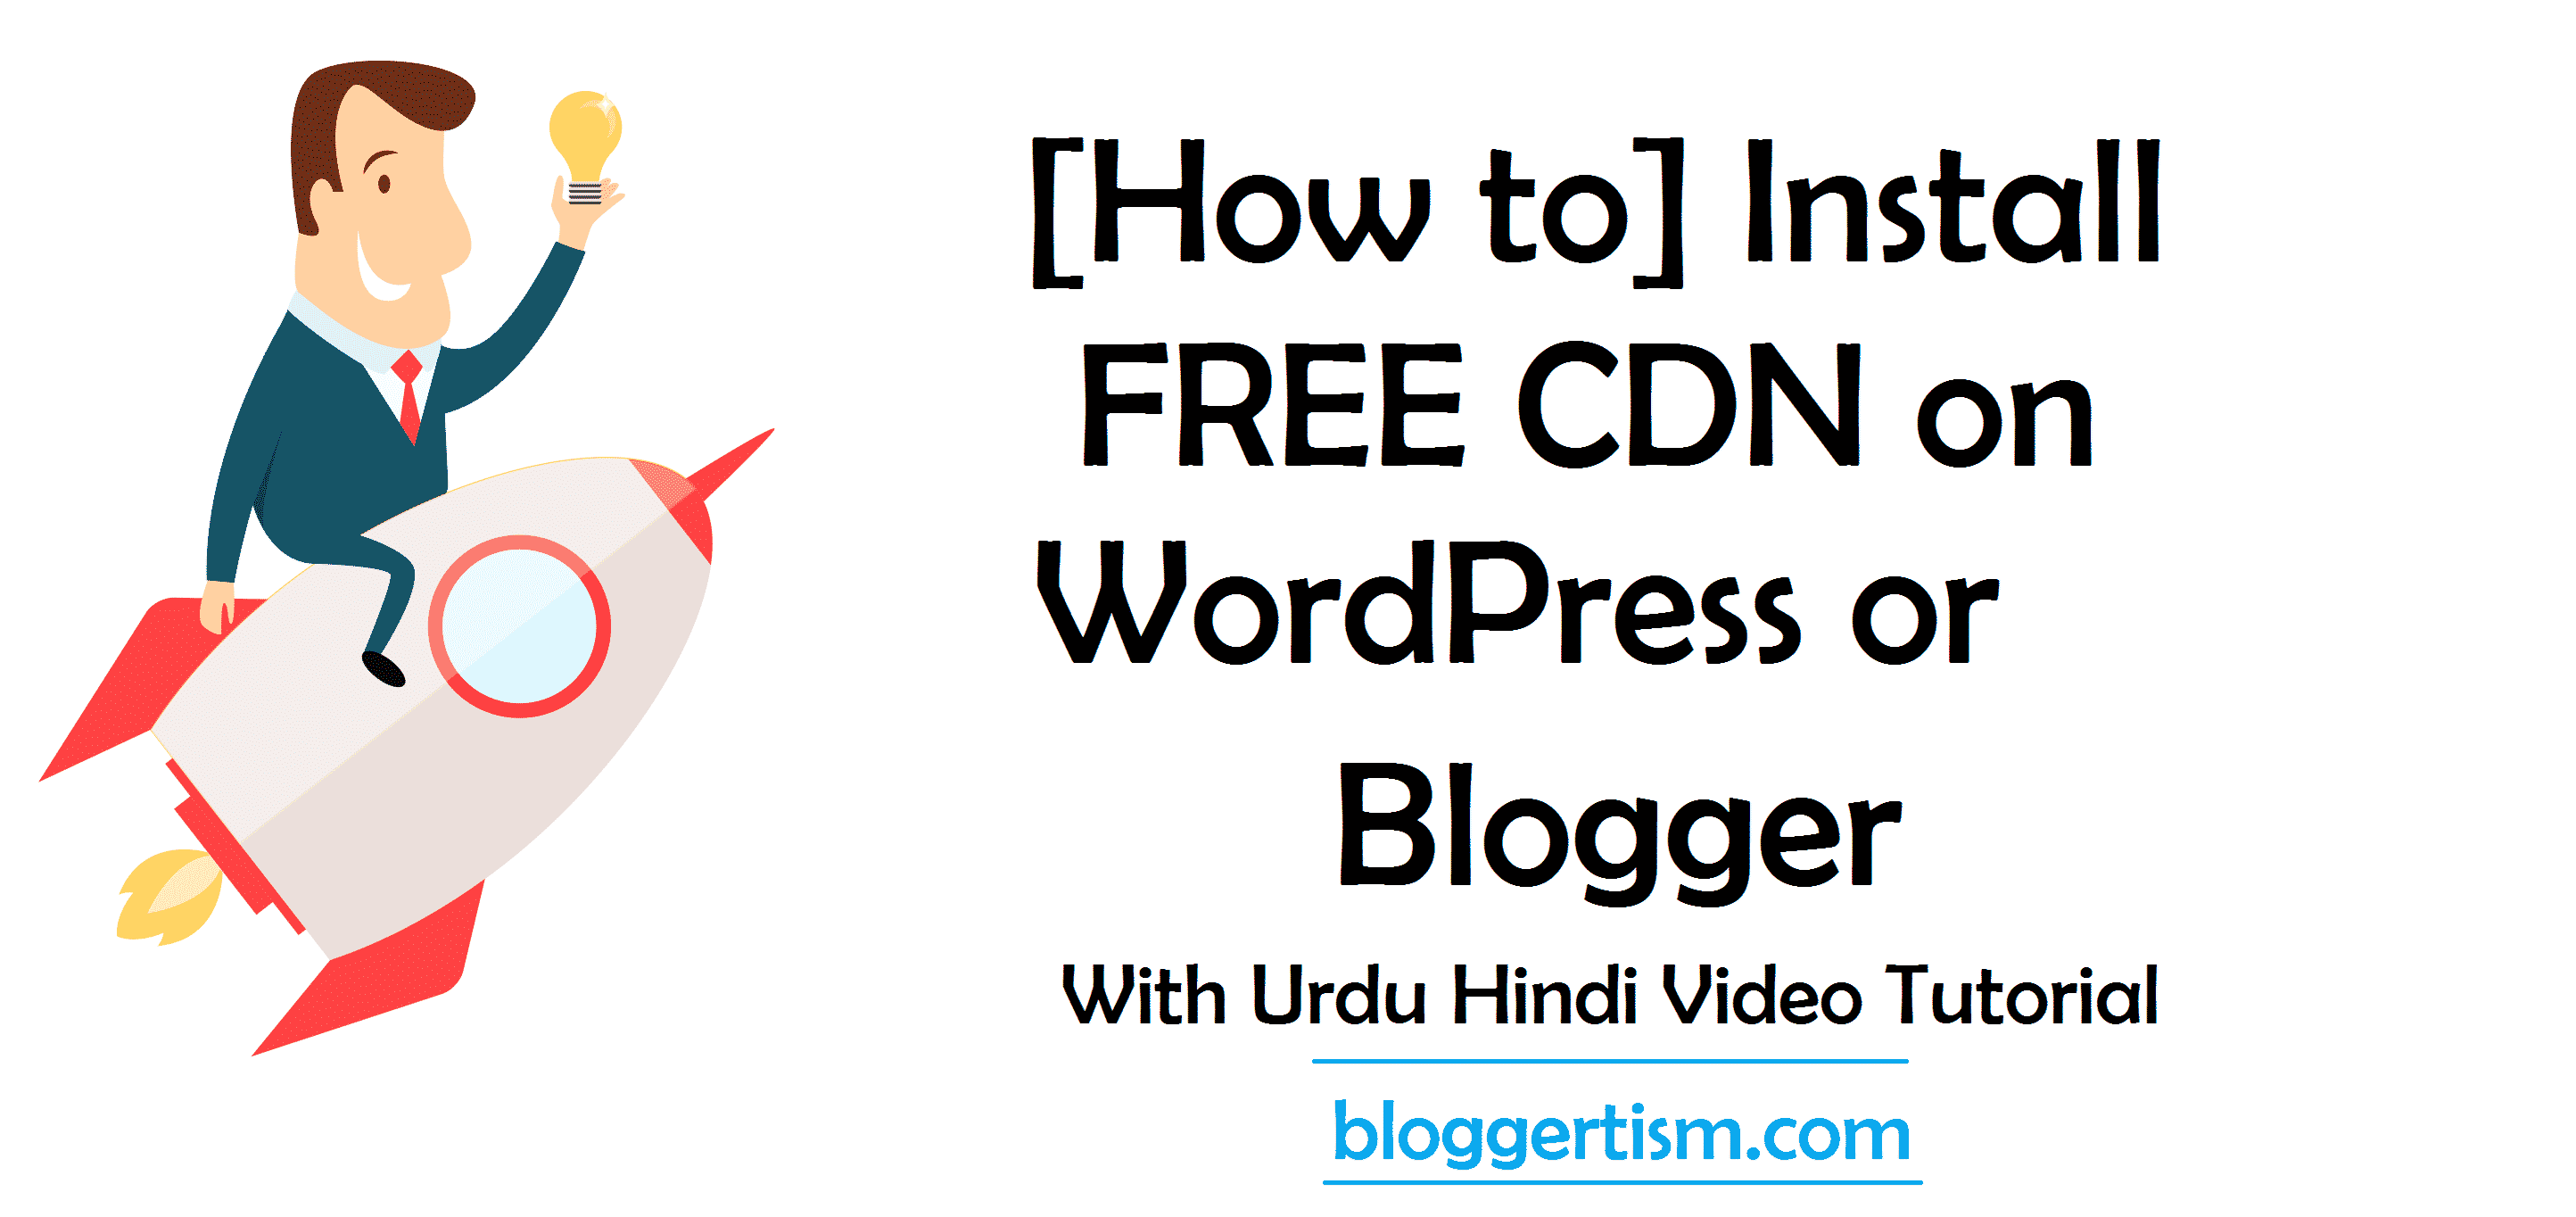 How to install free CDN on WordPress or Blogger